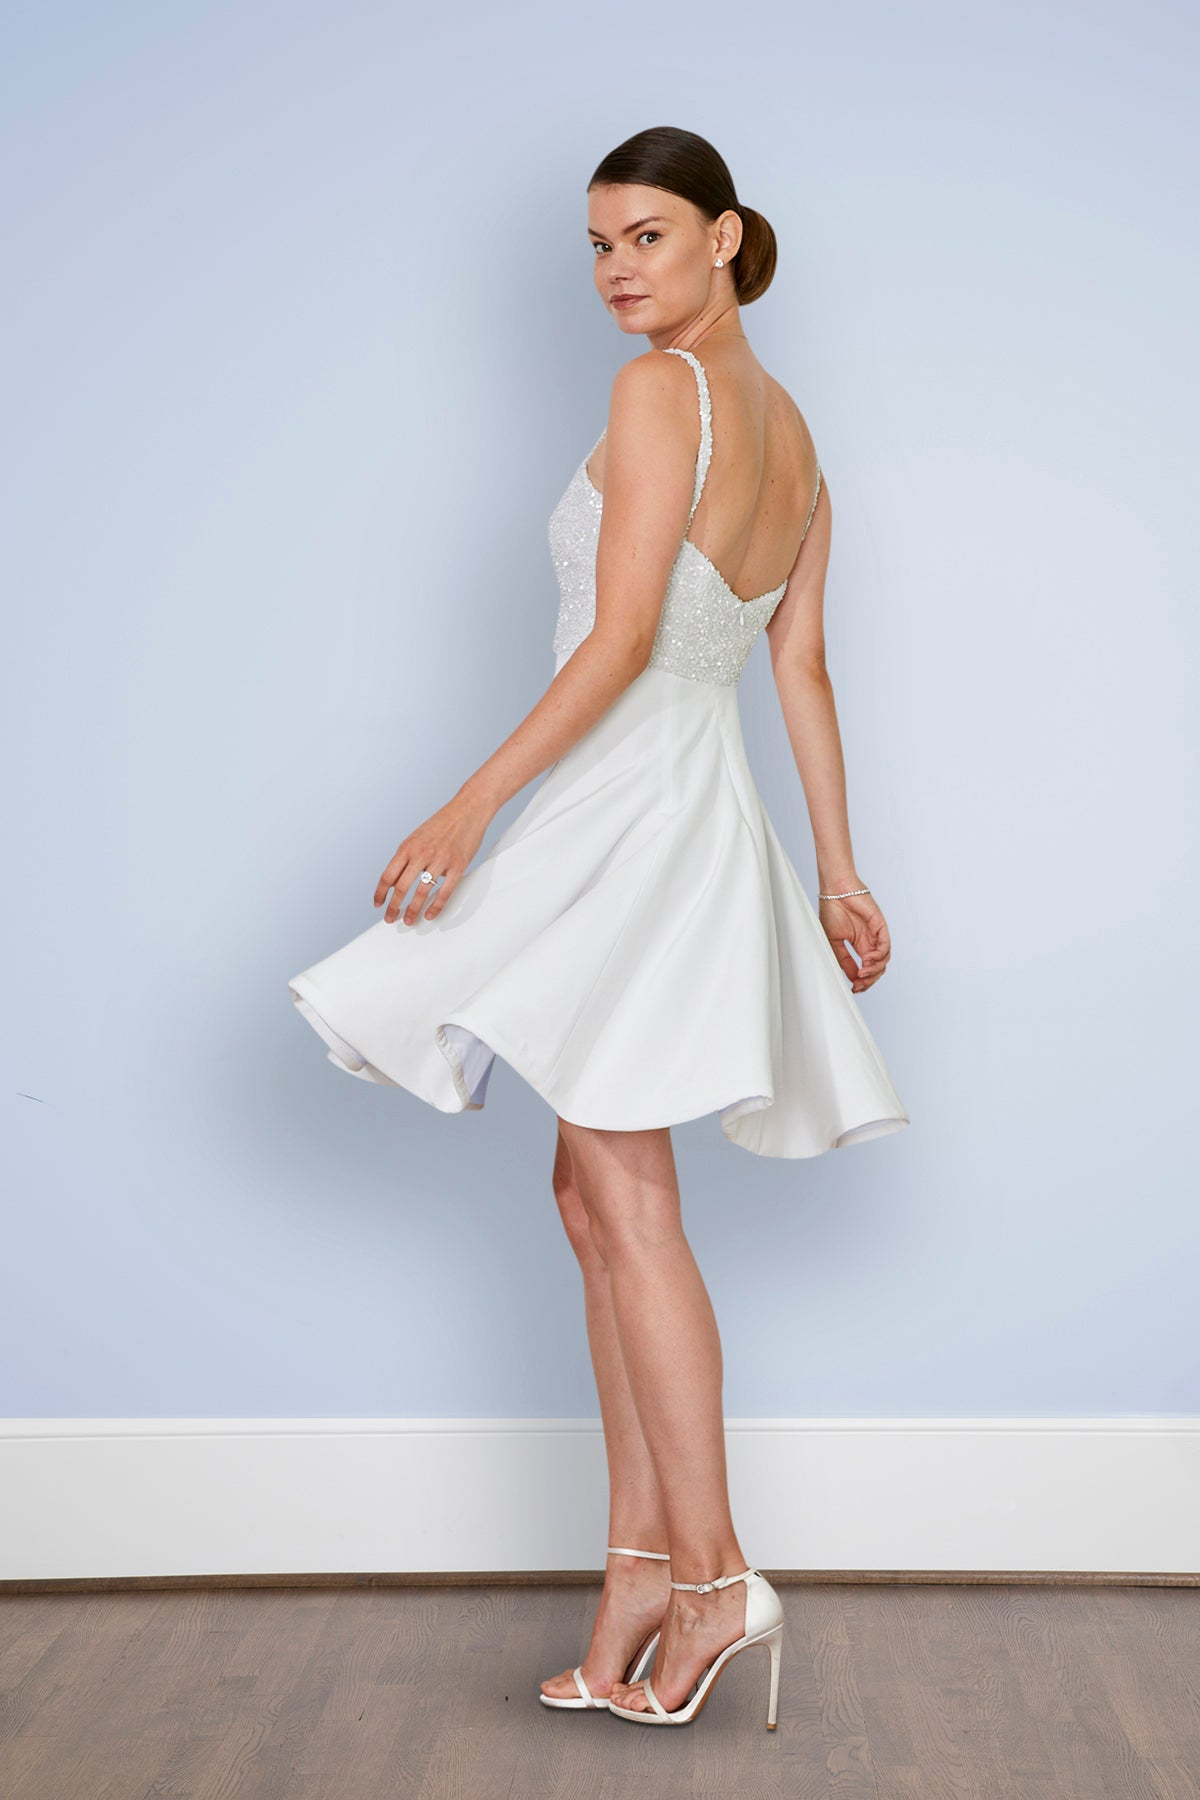 Kelly Short White Wedding And Rehearsal Dinner Bridal Party Dress Jane Summers Notice the cool eyelet designs, white leaf. kelly short white rehearsal dinner dress wedding reception dress